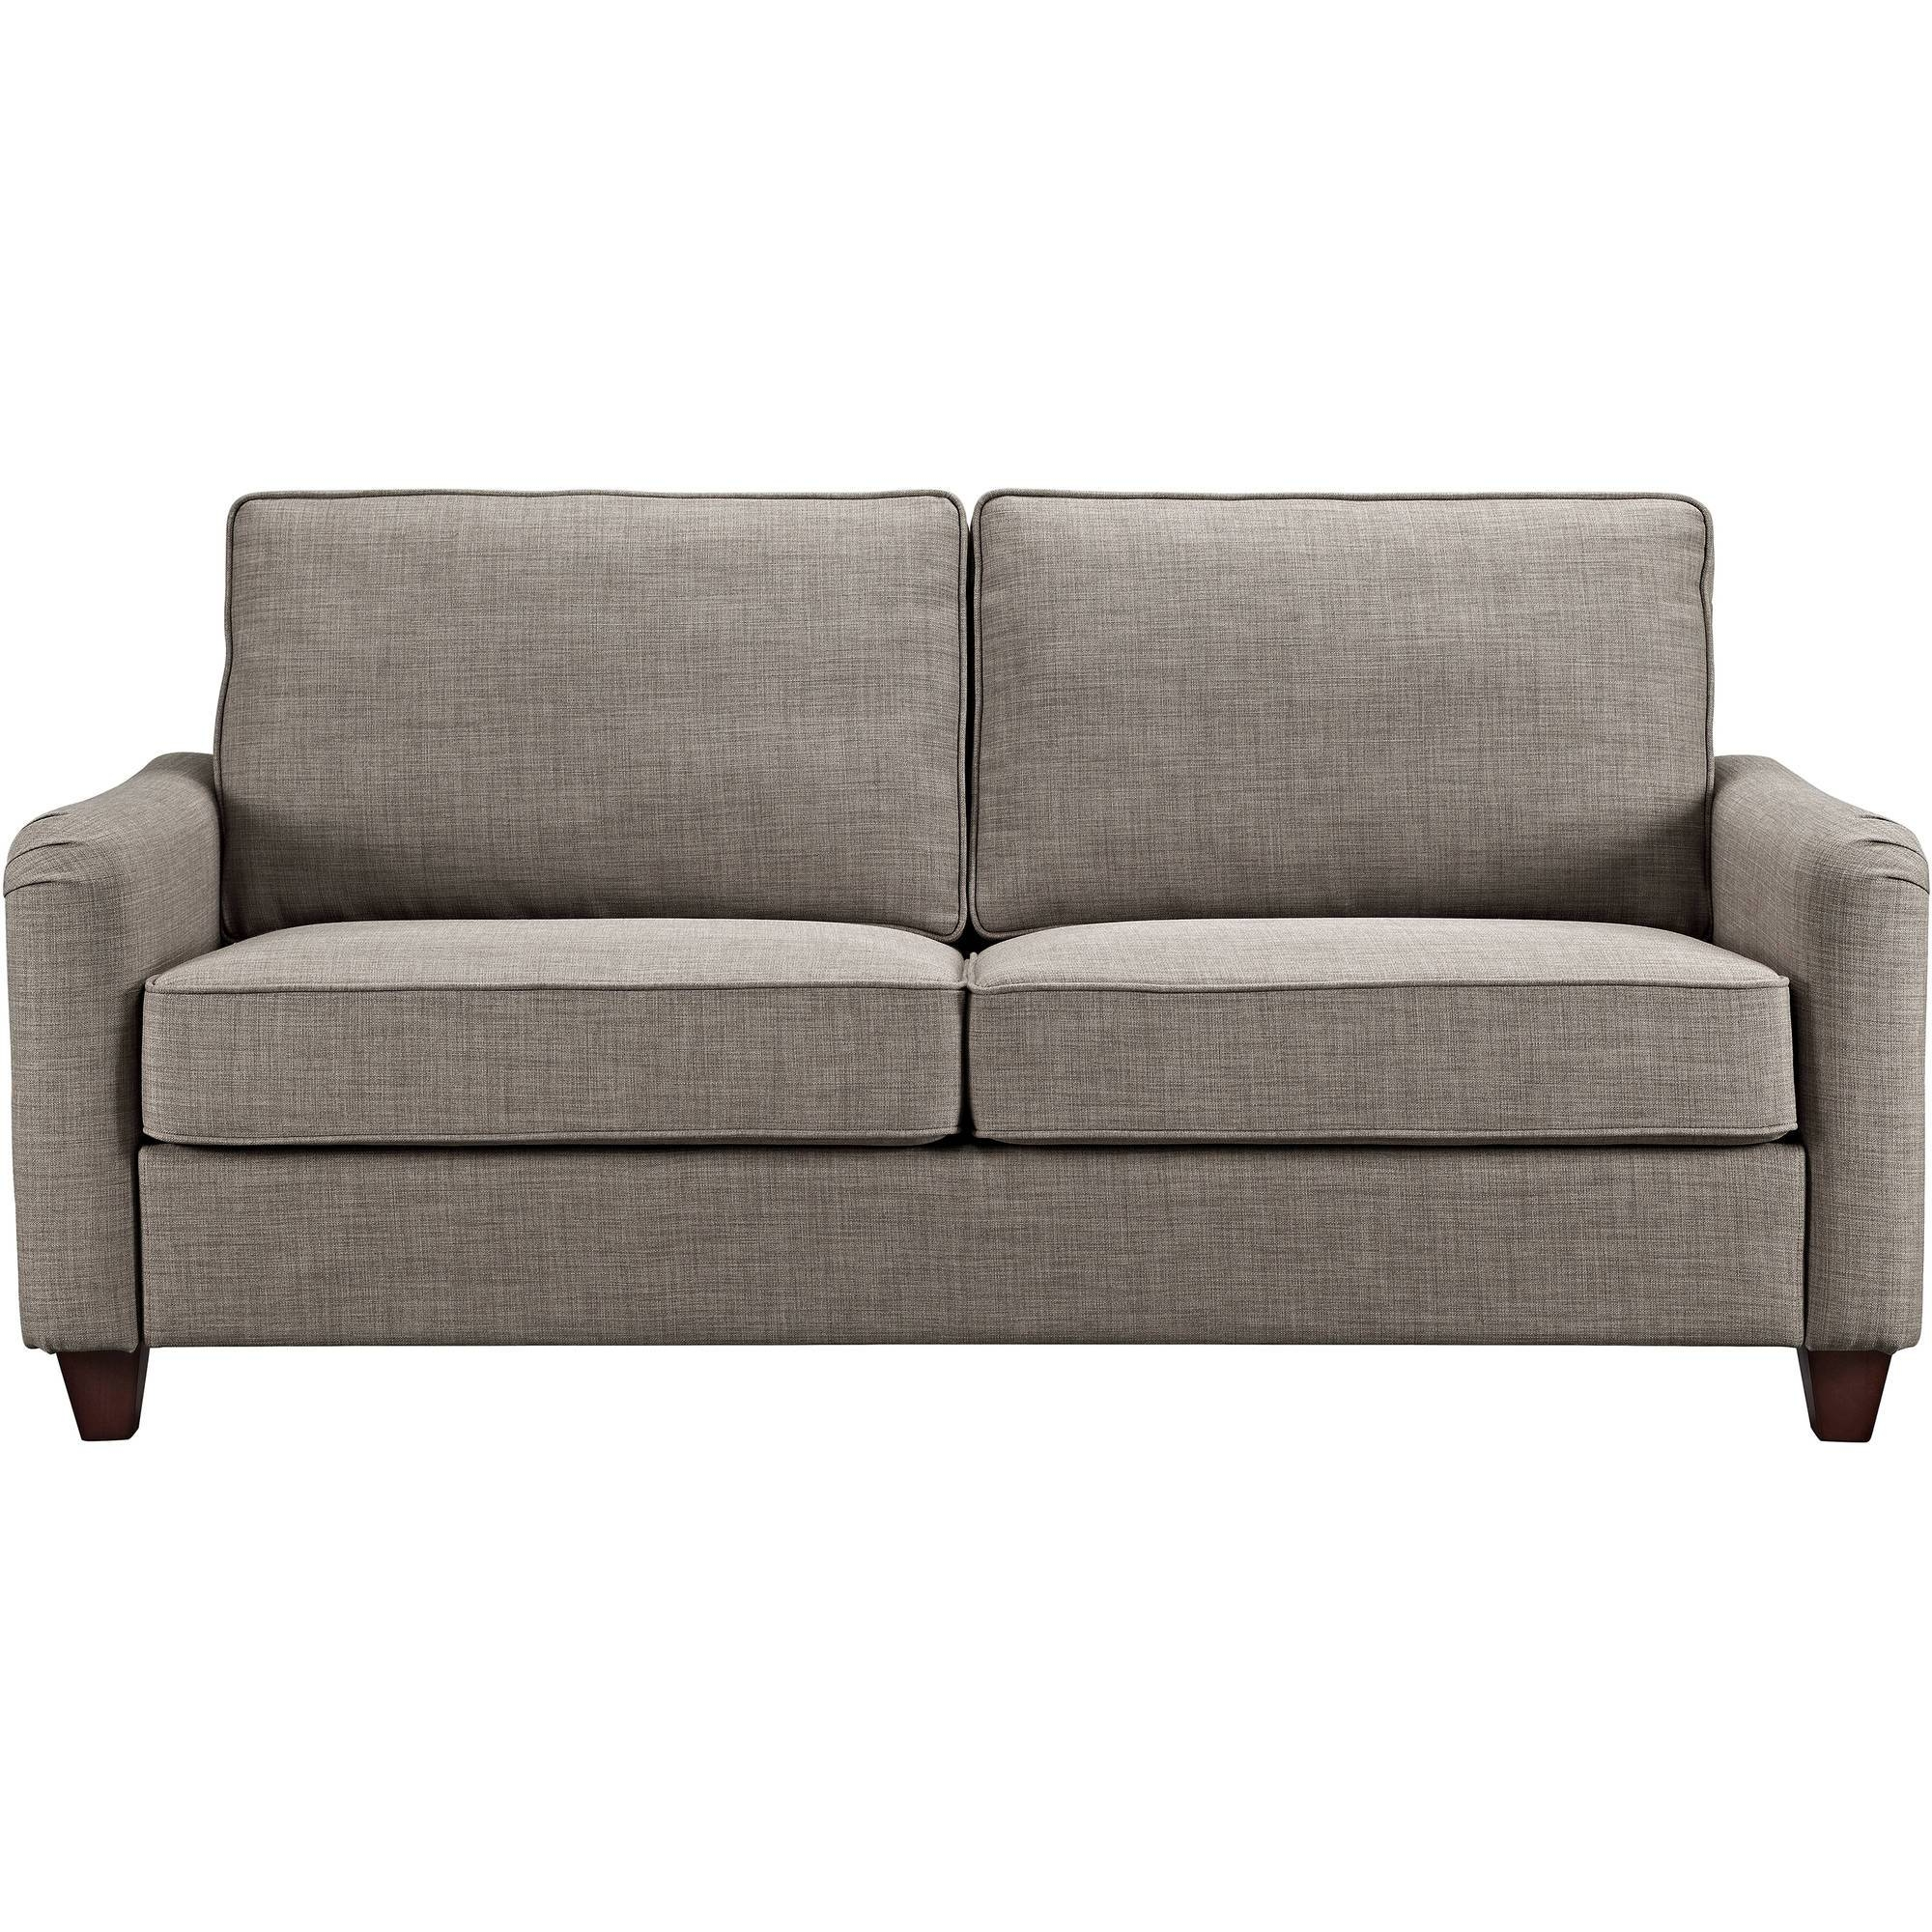 Living Room Furniture intended for Comfortable Sofas and Chairs (Image 10 of 30)